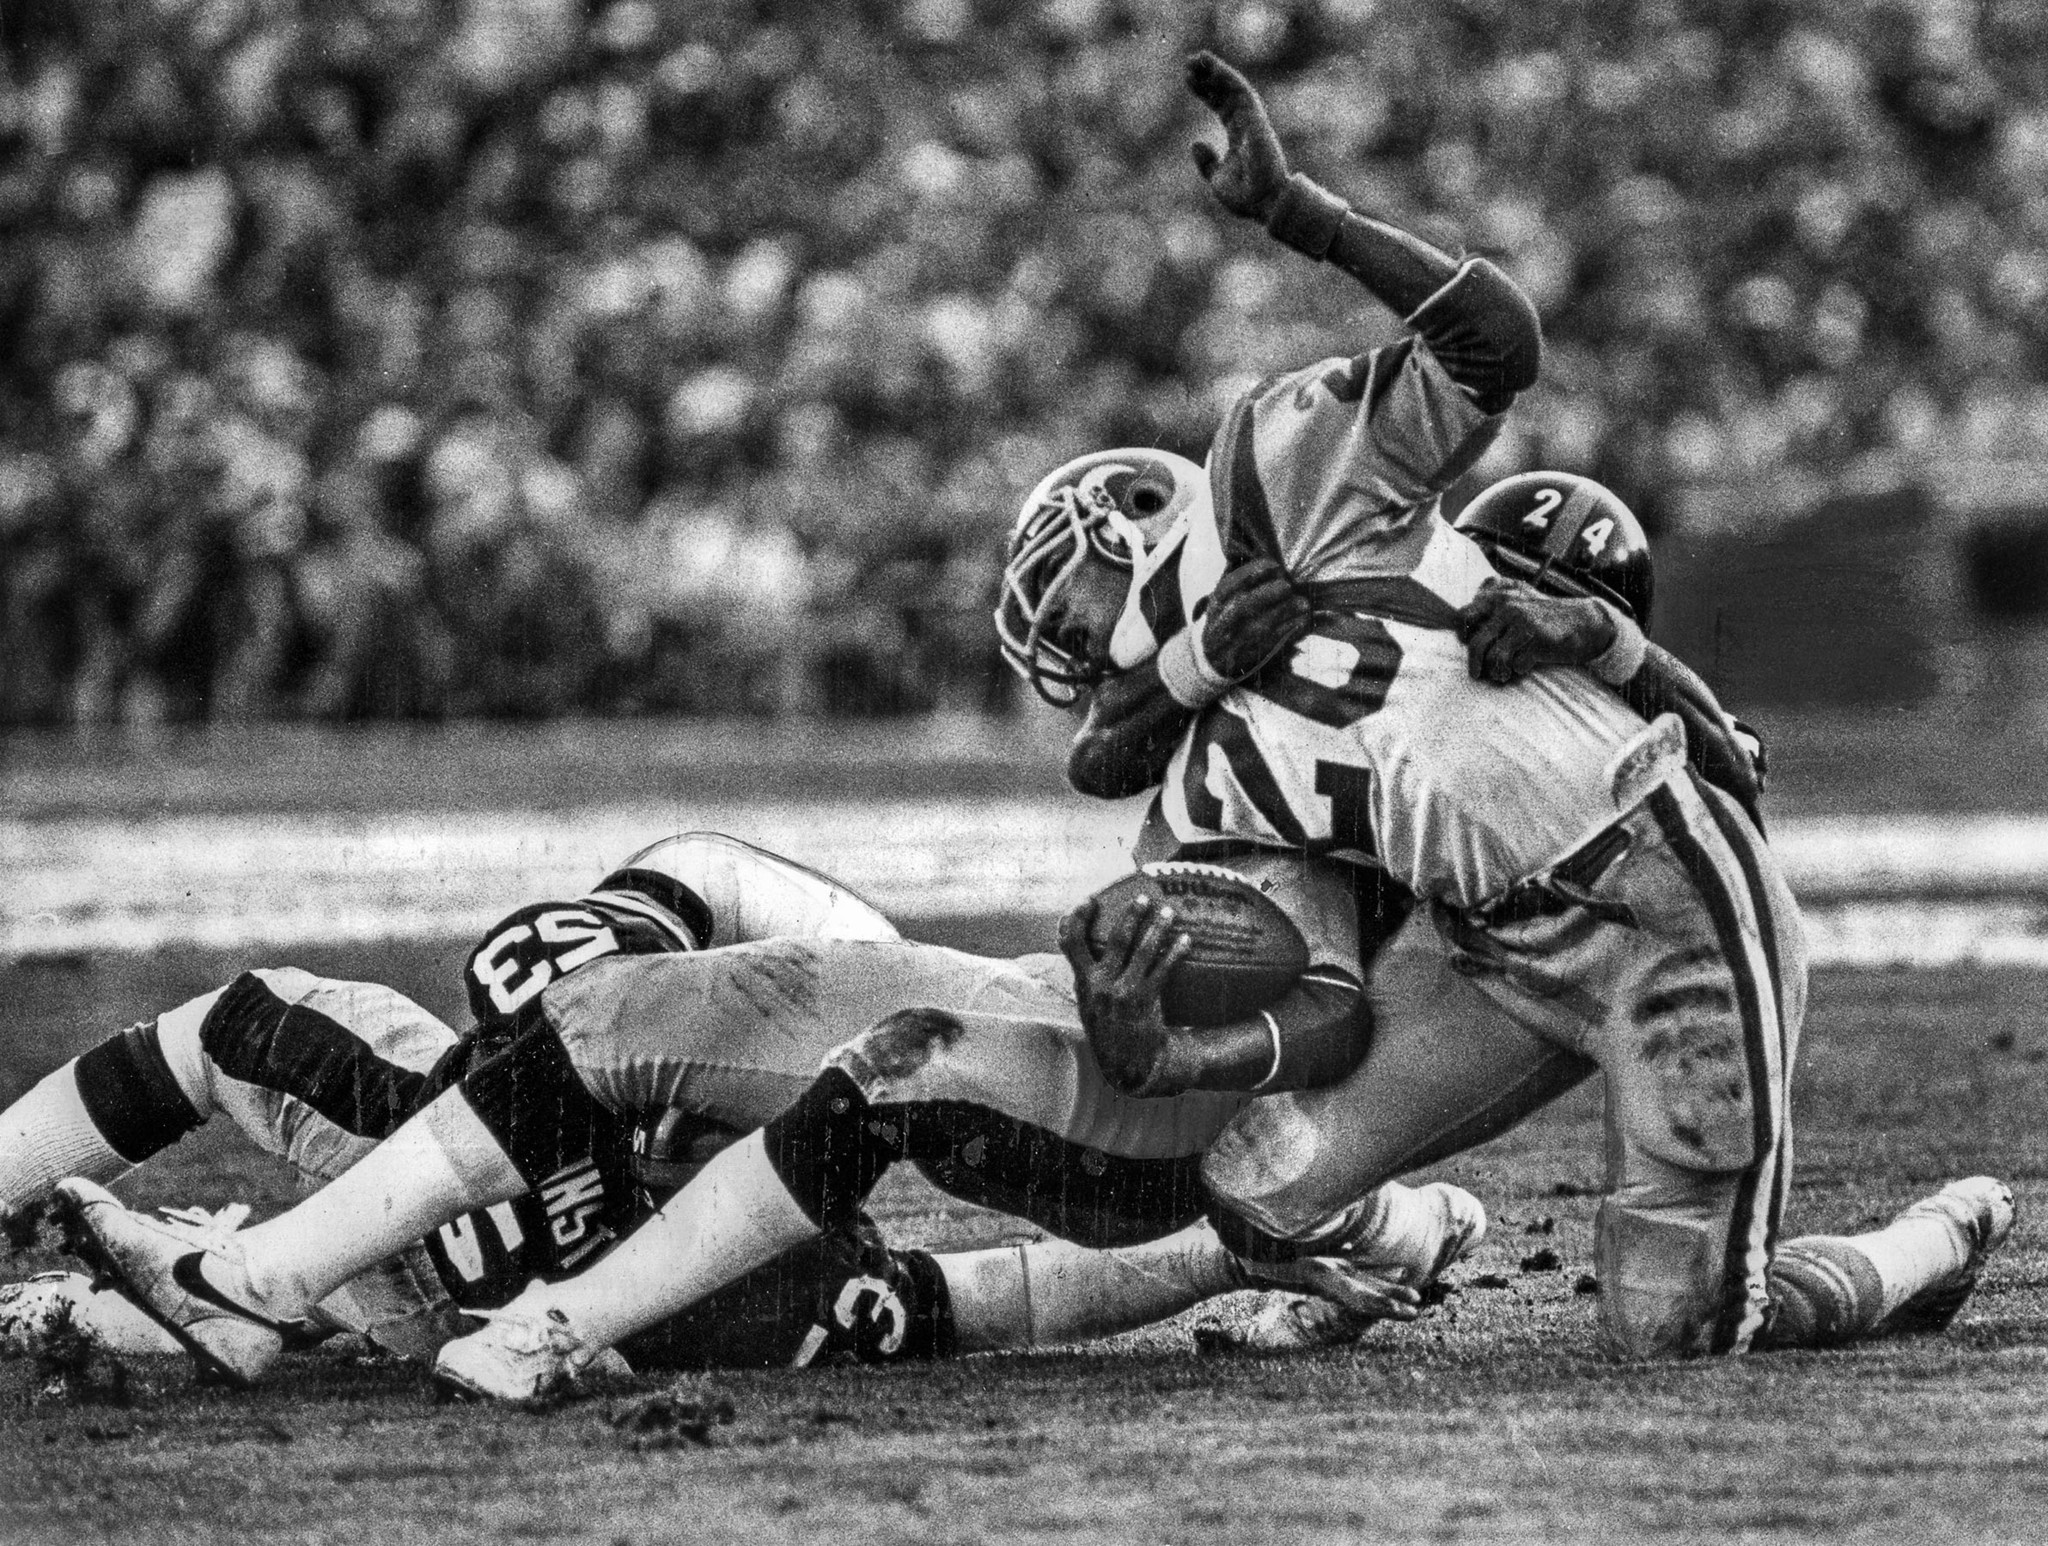 Jan. 20, 1980: Steeler defensive back J.T. Thomas wrestles Wendell Tyler to the turf, stopping the R